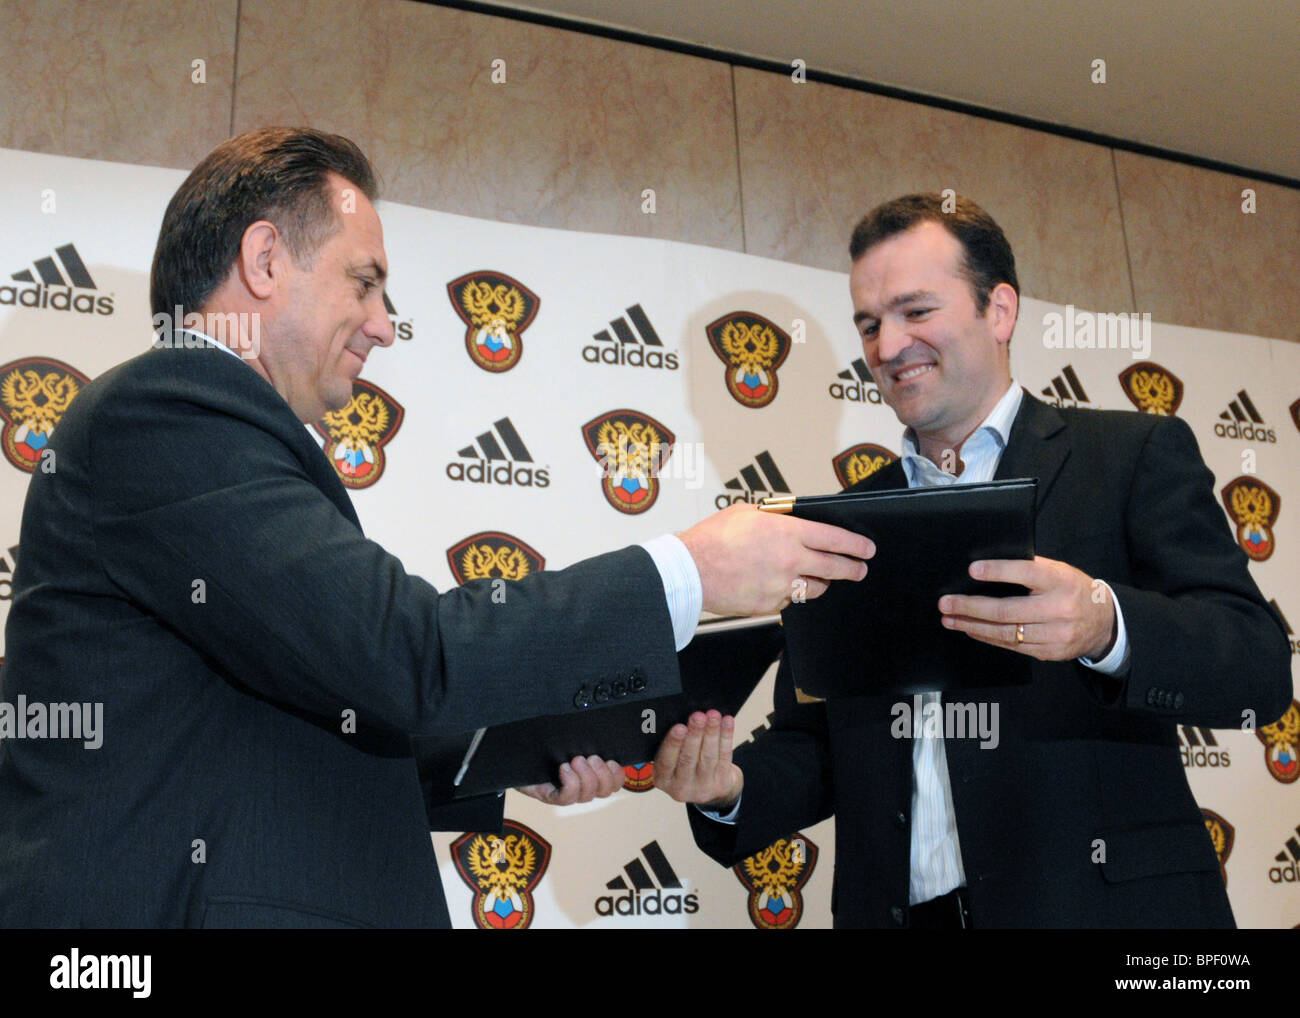 Adidas Ltd and Russian Football Union sign partnership